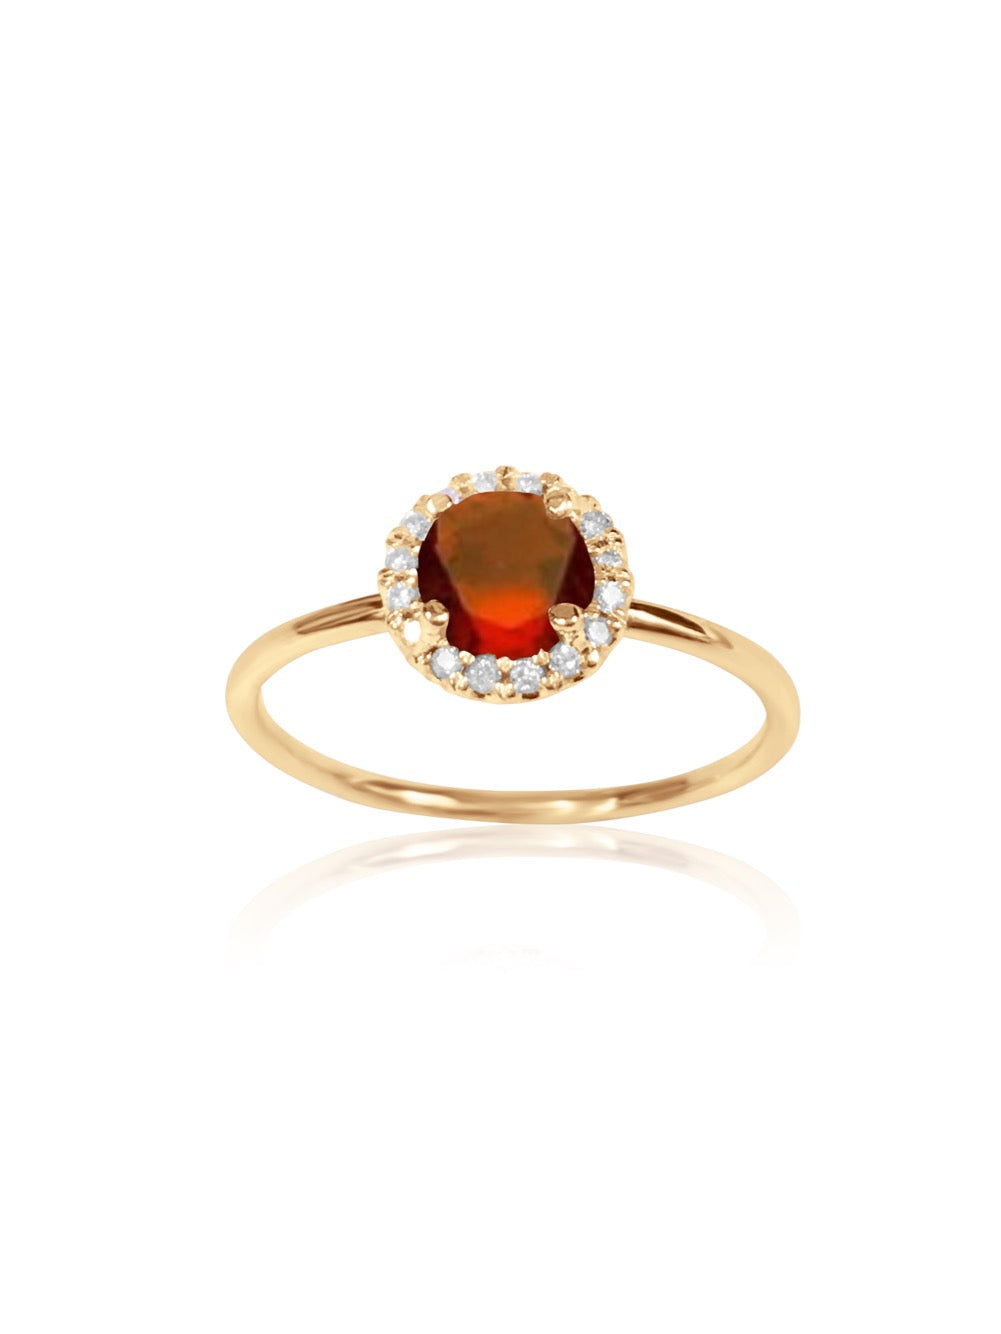 14k Gold Diamond Gemstone Ring